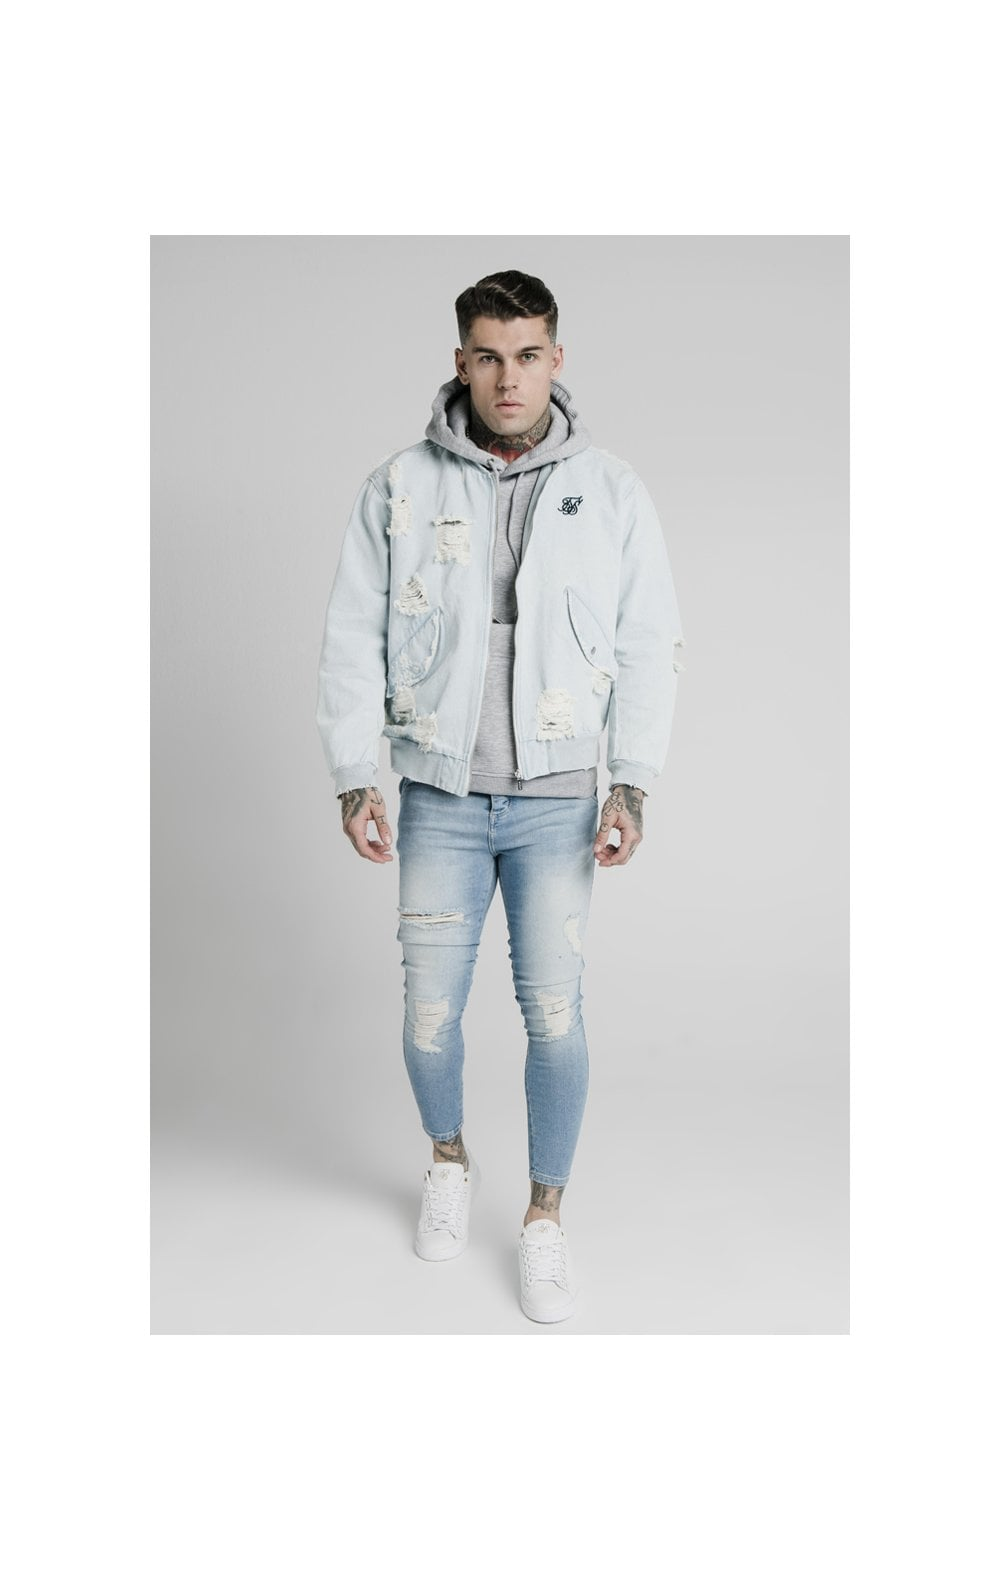 SikSilk Distressed Denim Bomber Jacket - Light Blue (3)